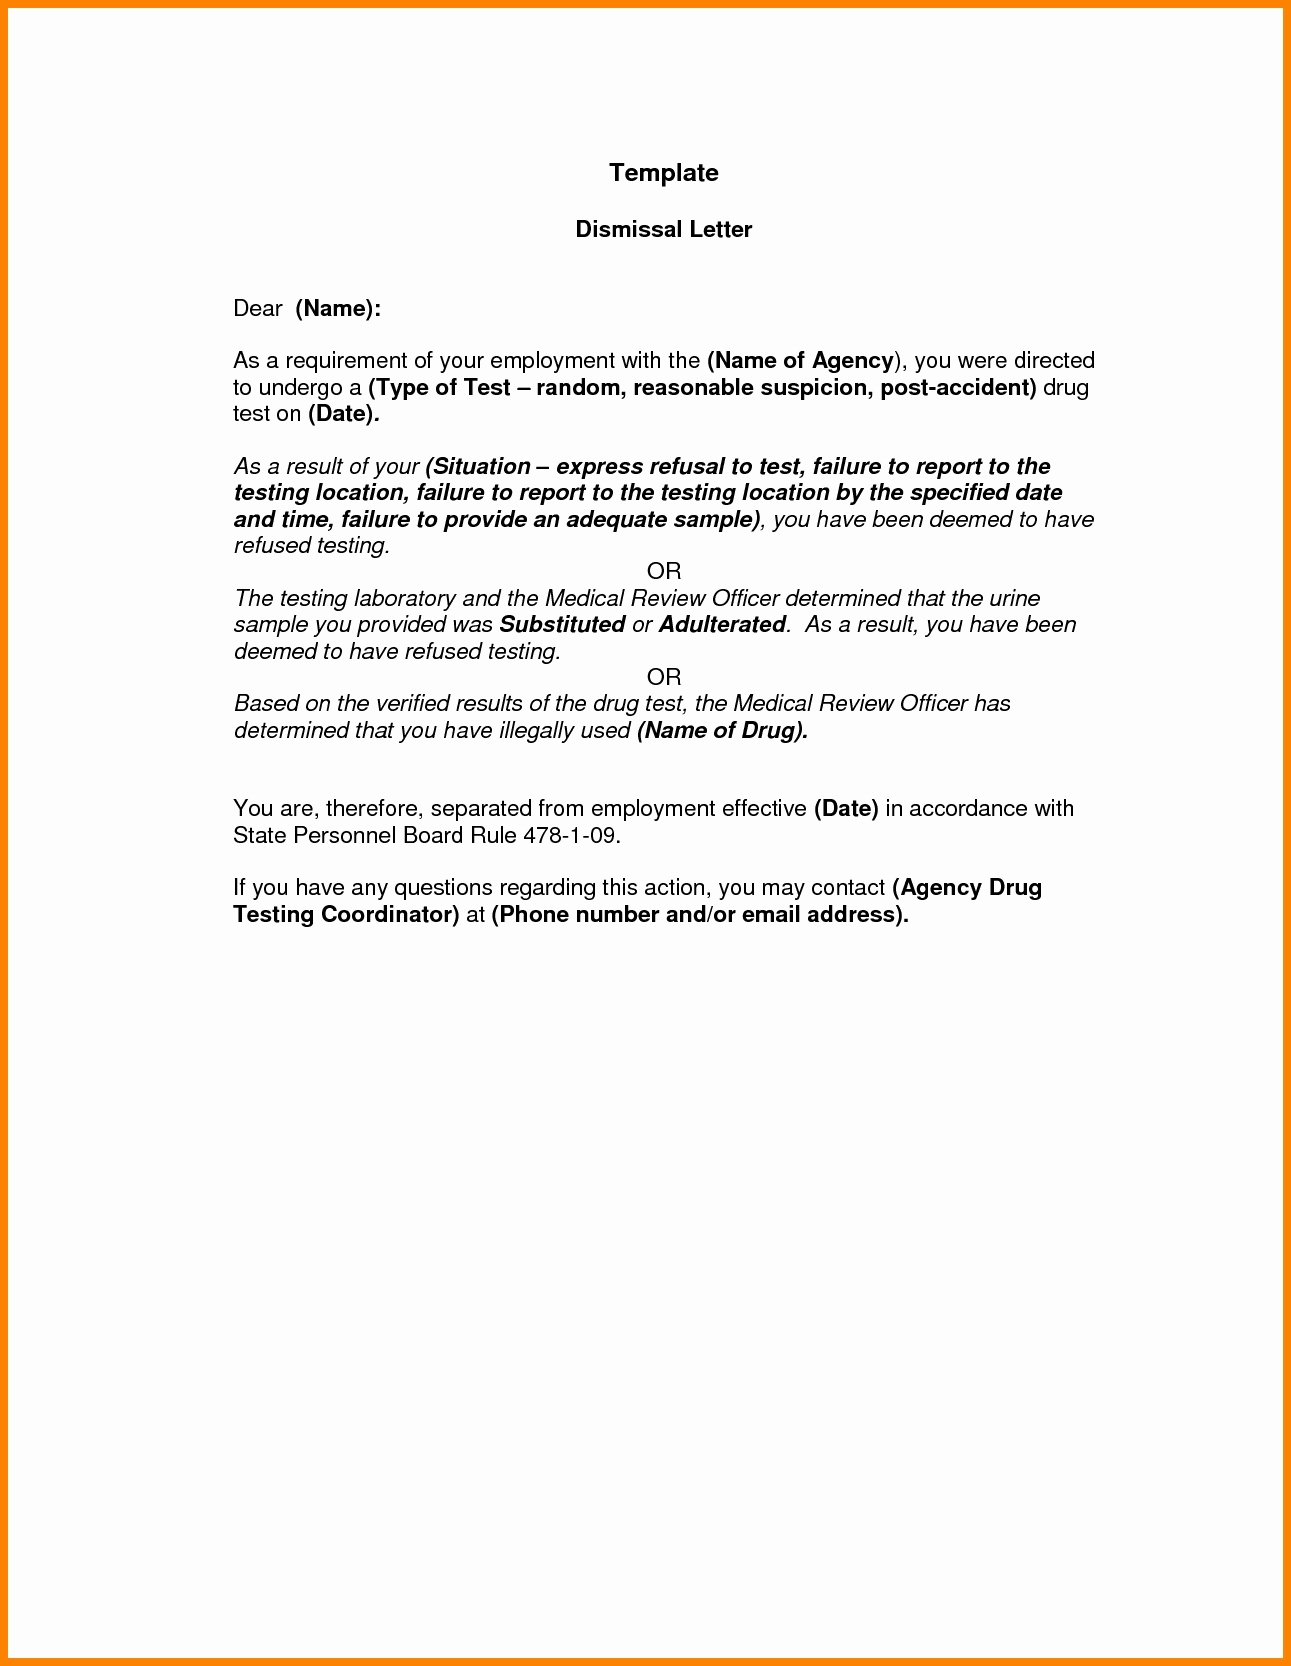 Patient Dismissal Letter for Behavior Template - Dismissal Letter to Patient – Imzadi Fragrances